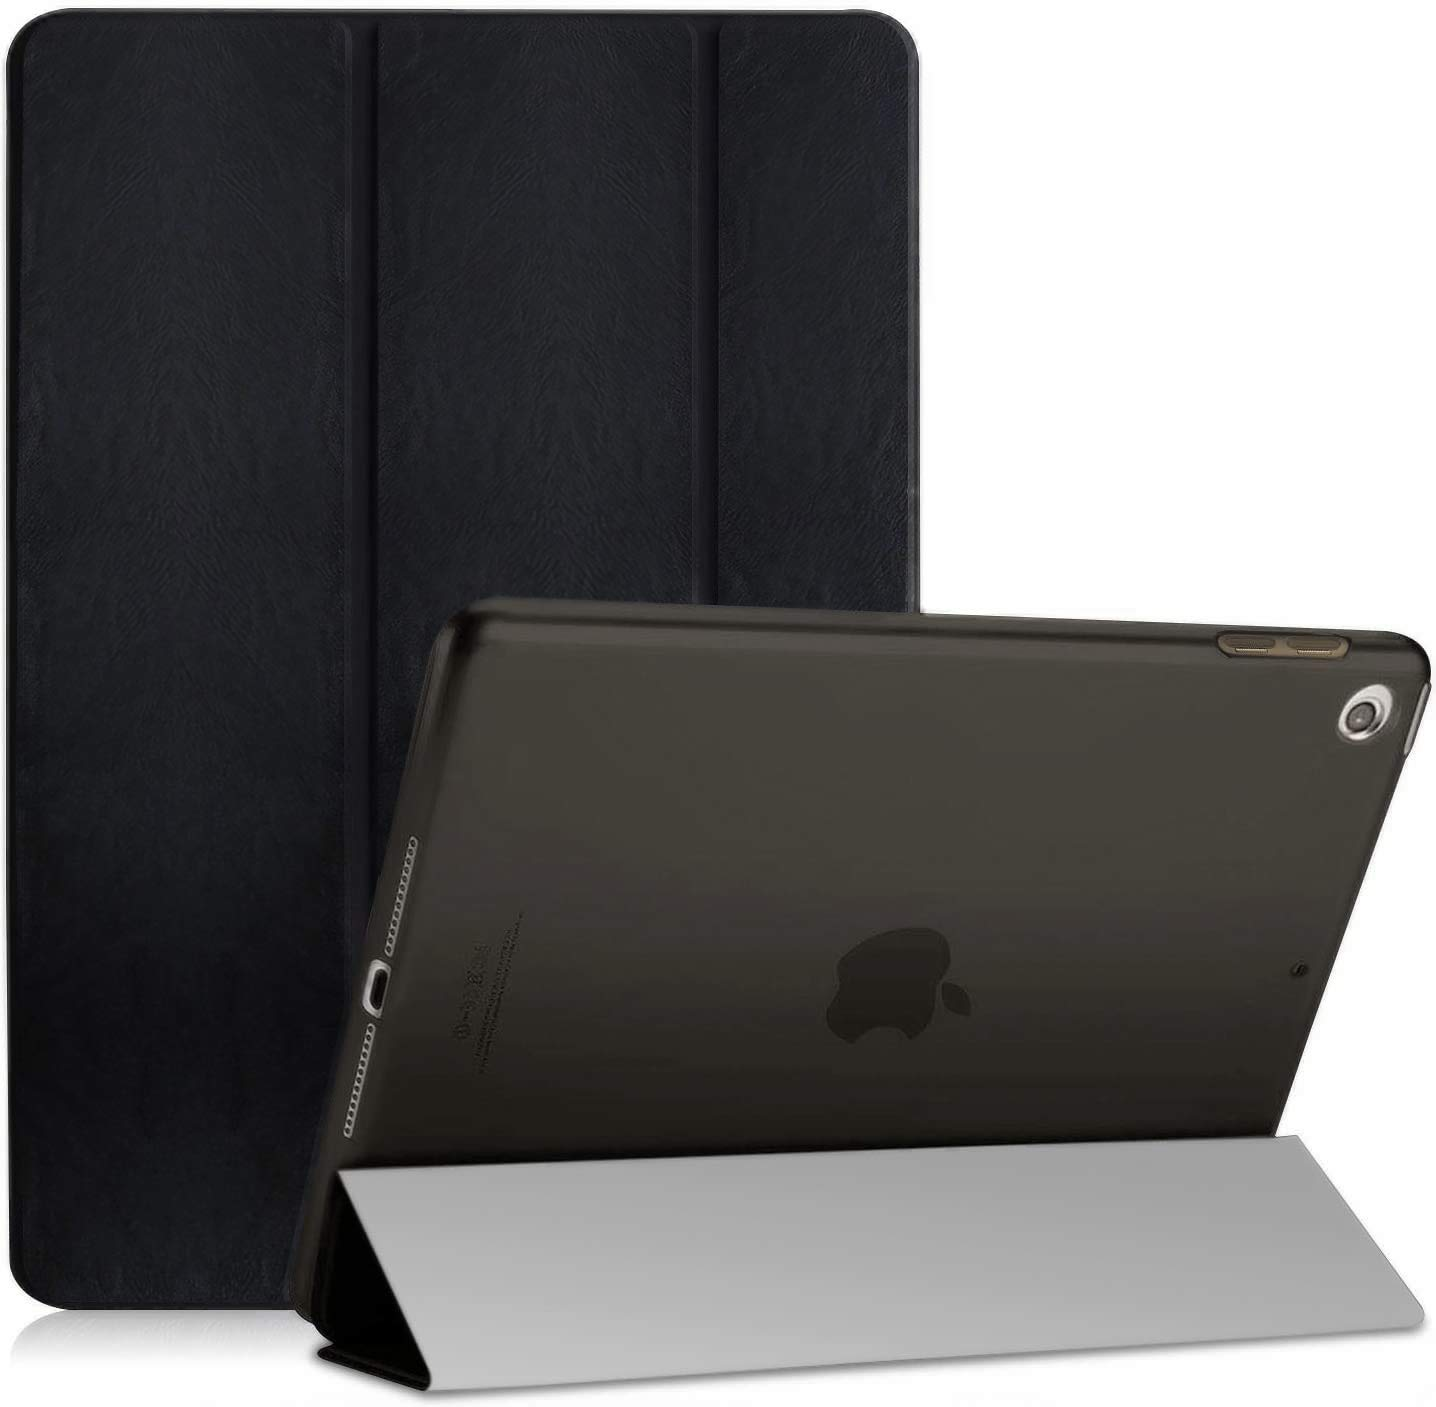 OKP iPad 10.2 Case 2019 iPad 7th Generation Case, Premium Leather Tablet Case with Soft TPU Back Shell for iPad 7th Gen 10.2 inch (A2197 A2198 A2200), Black